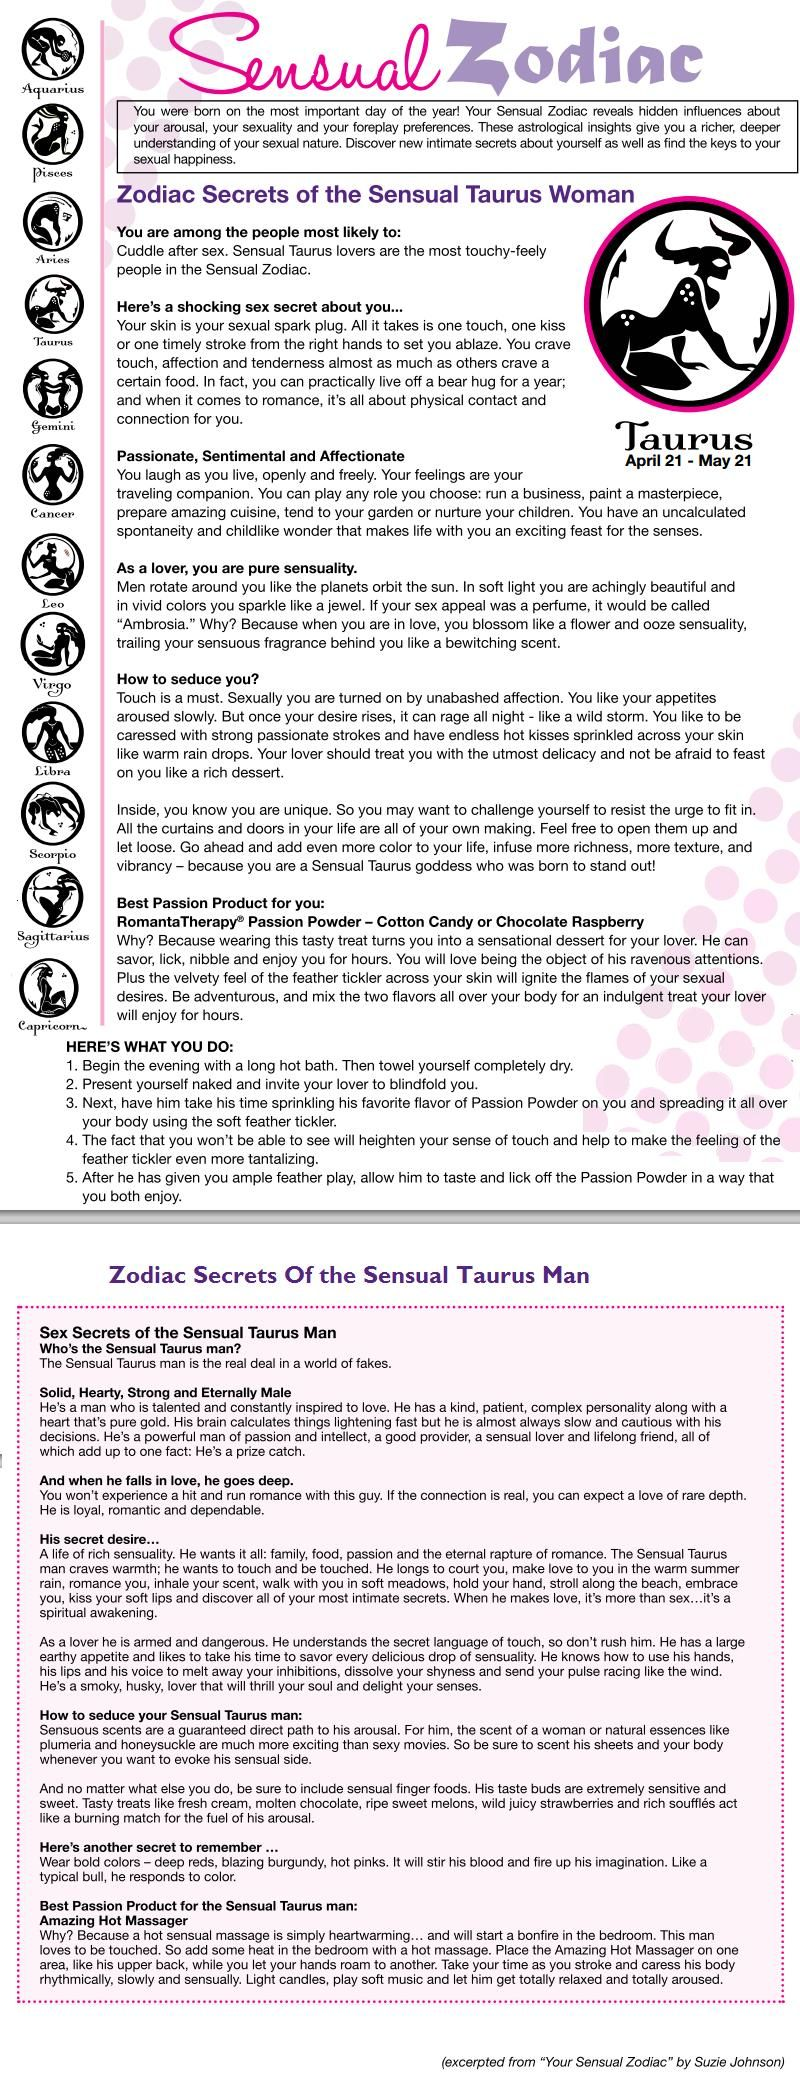 Secret sensual side zodiac signs astrology